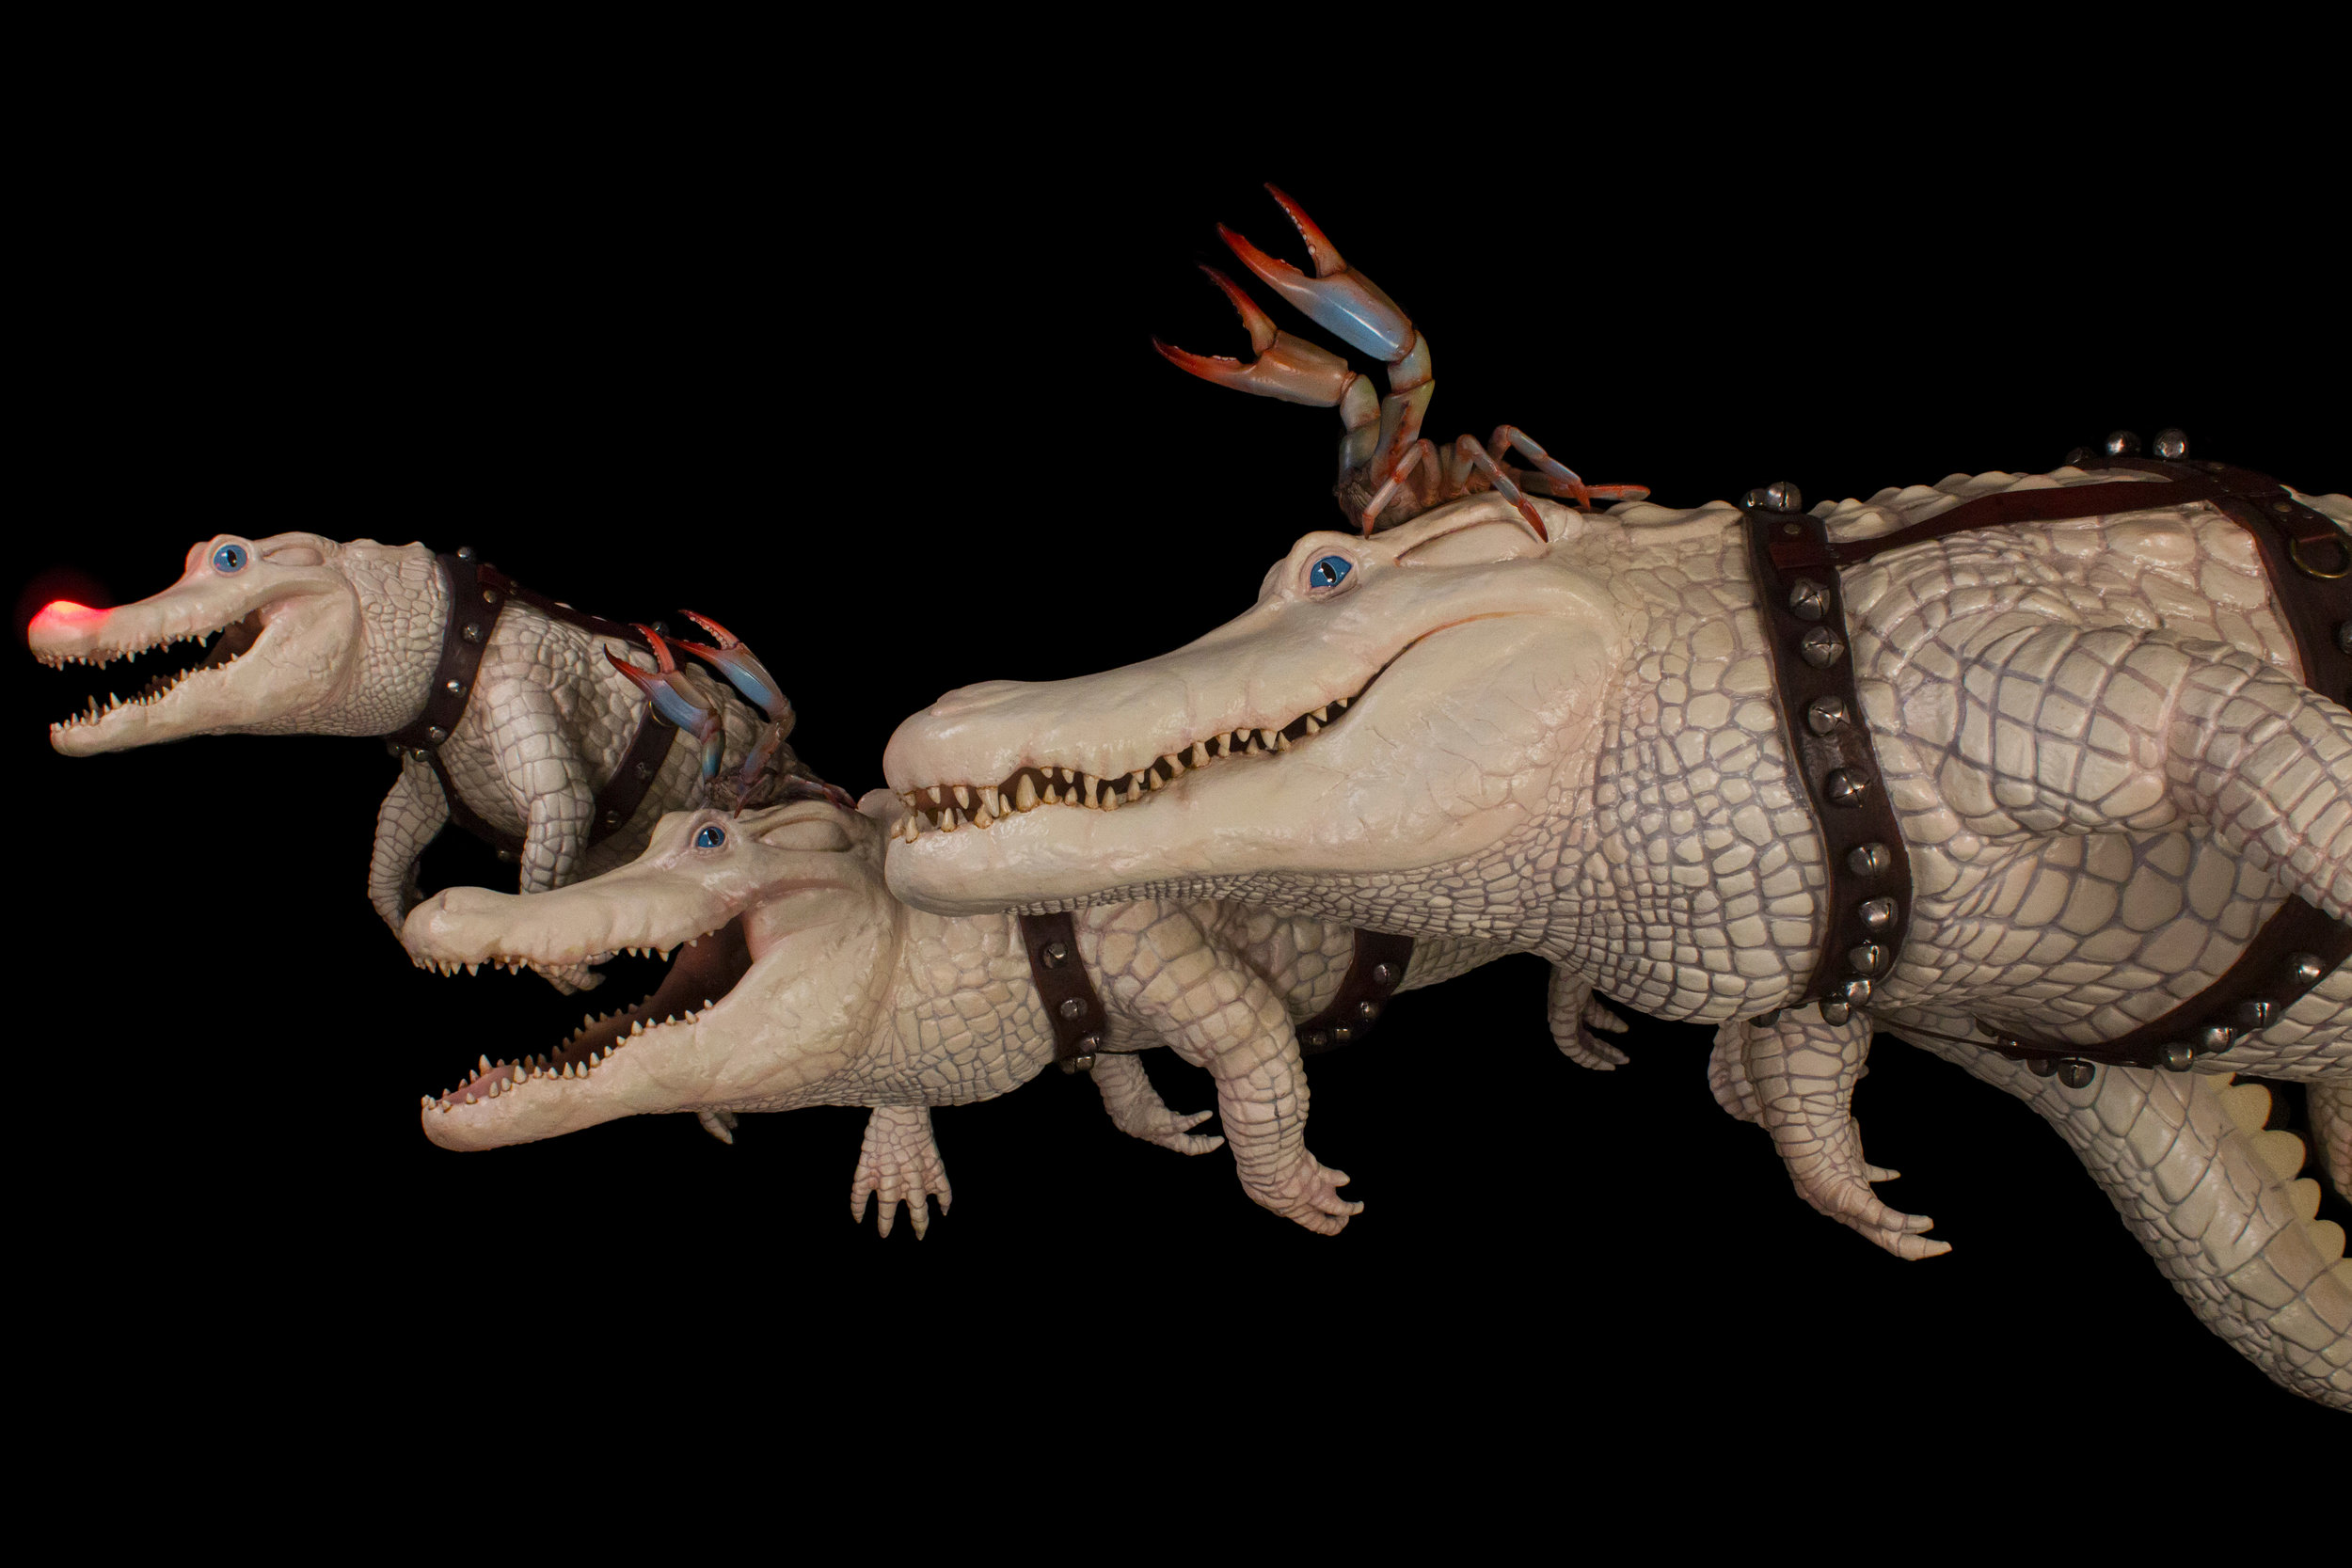 These gators served as reindeer for Cajun Santa in a Louisiana themed Christmas display